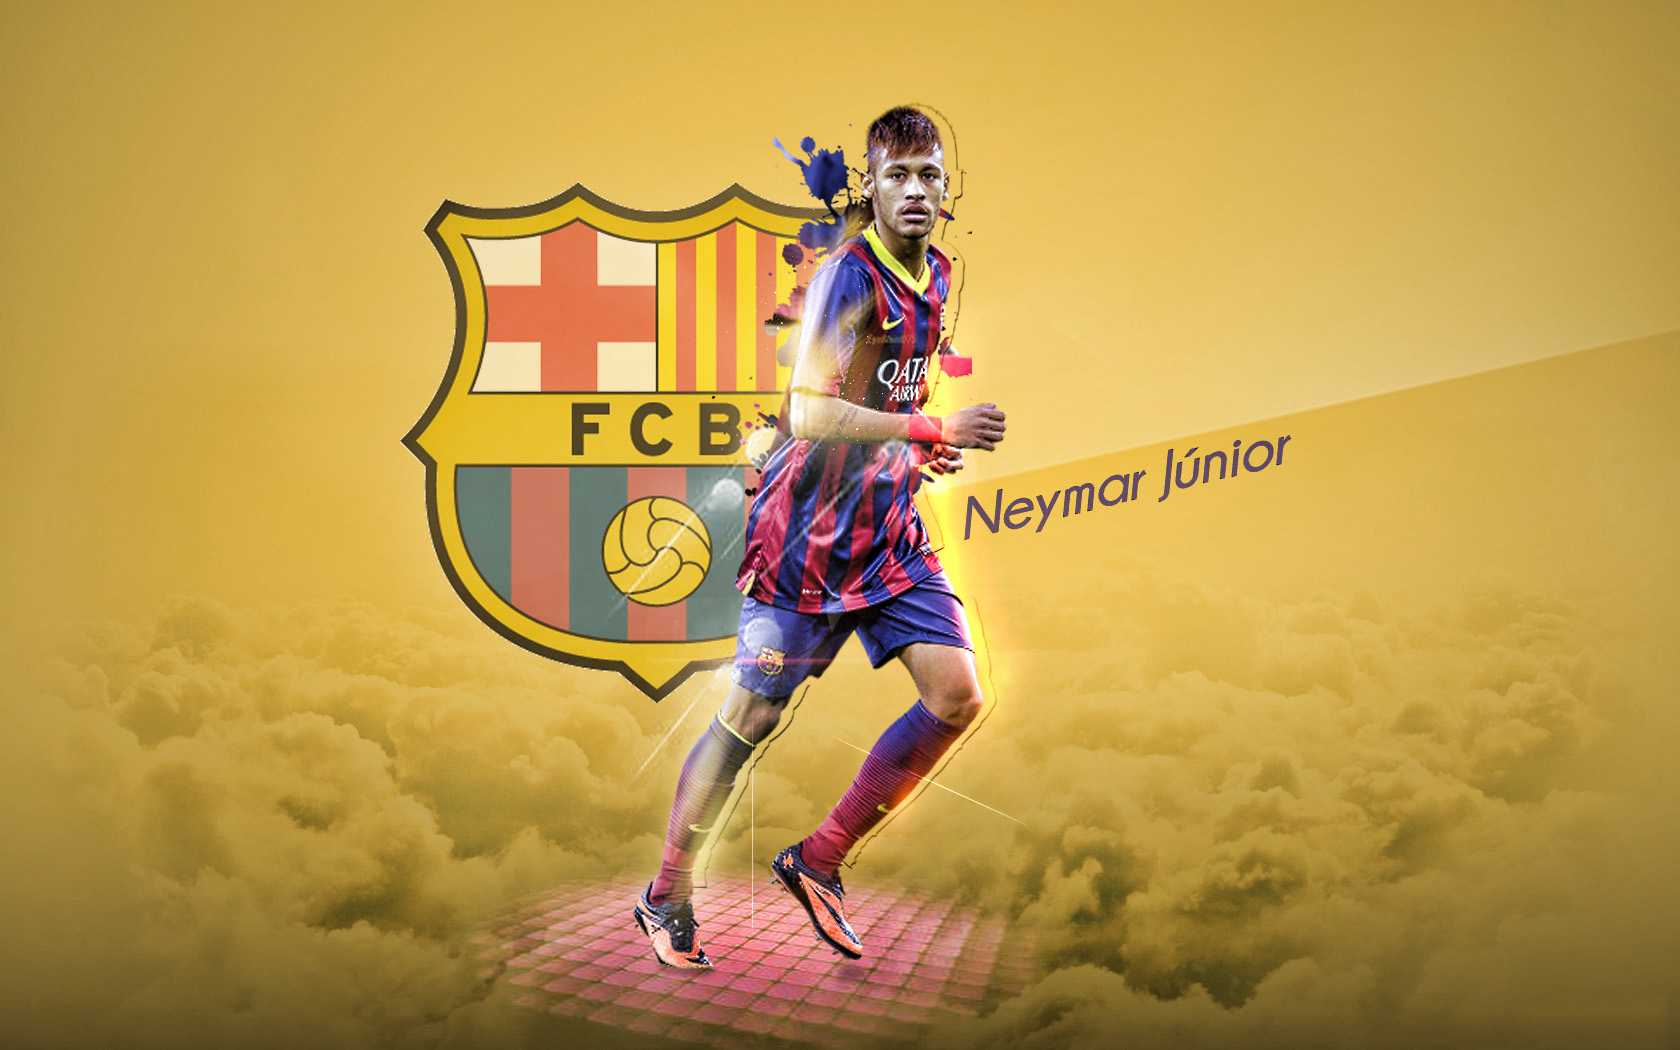 Neymar wallpaper - FC Barcelona #15